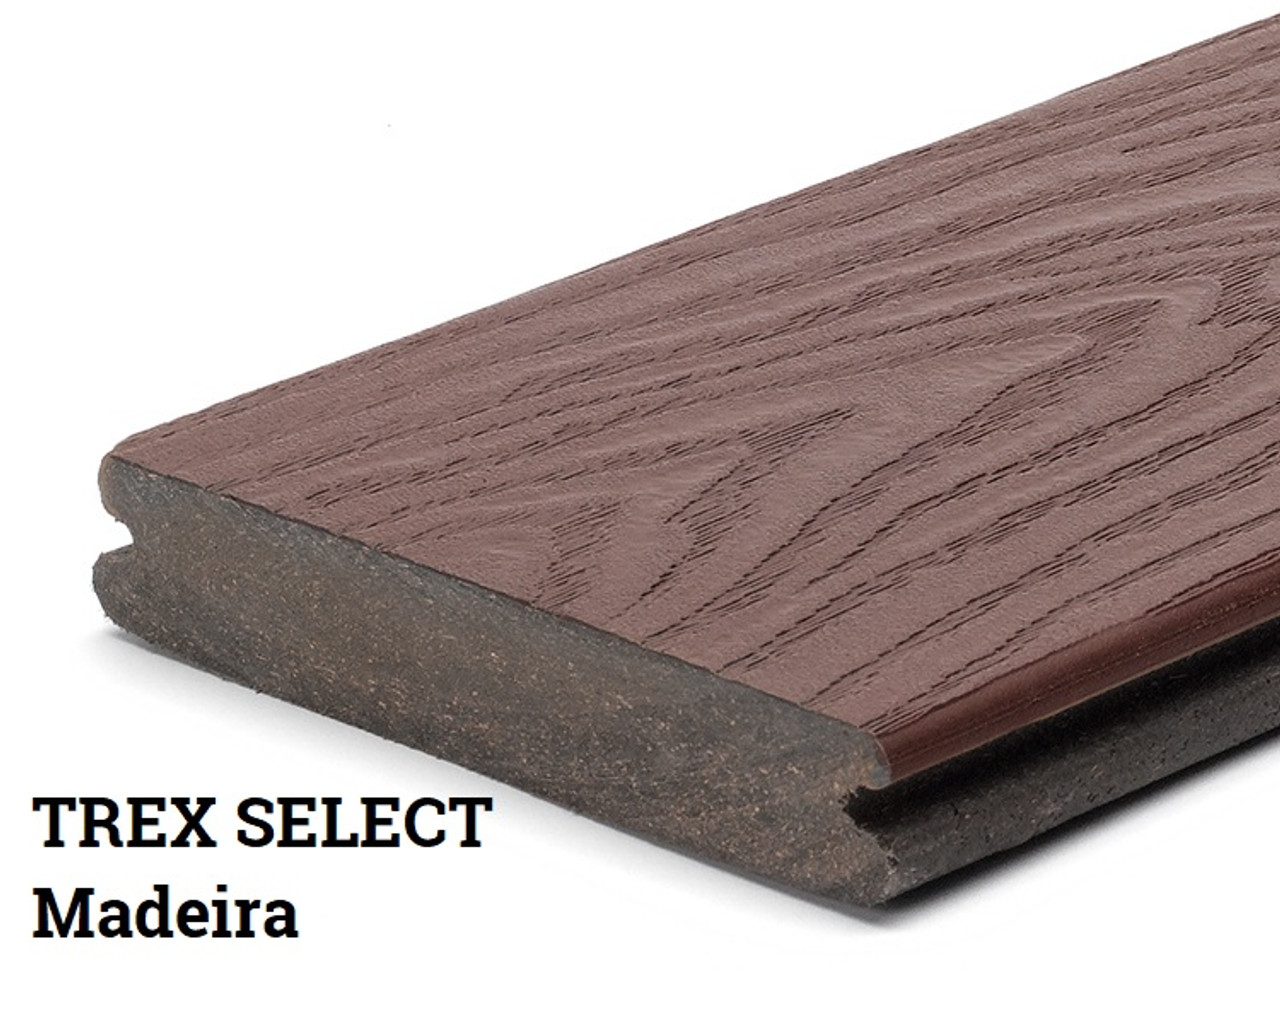 Trex Select Madeira Grooved Edge Decking